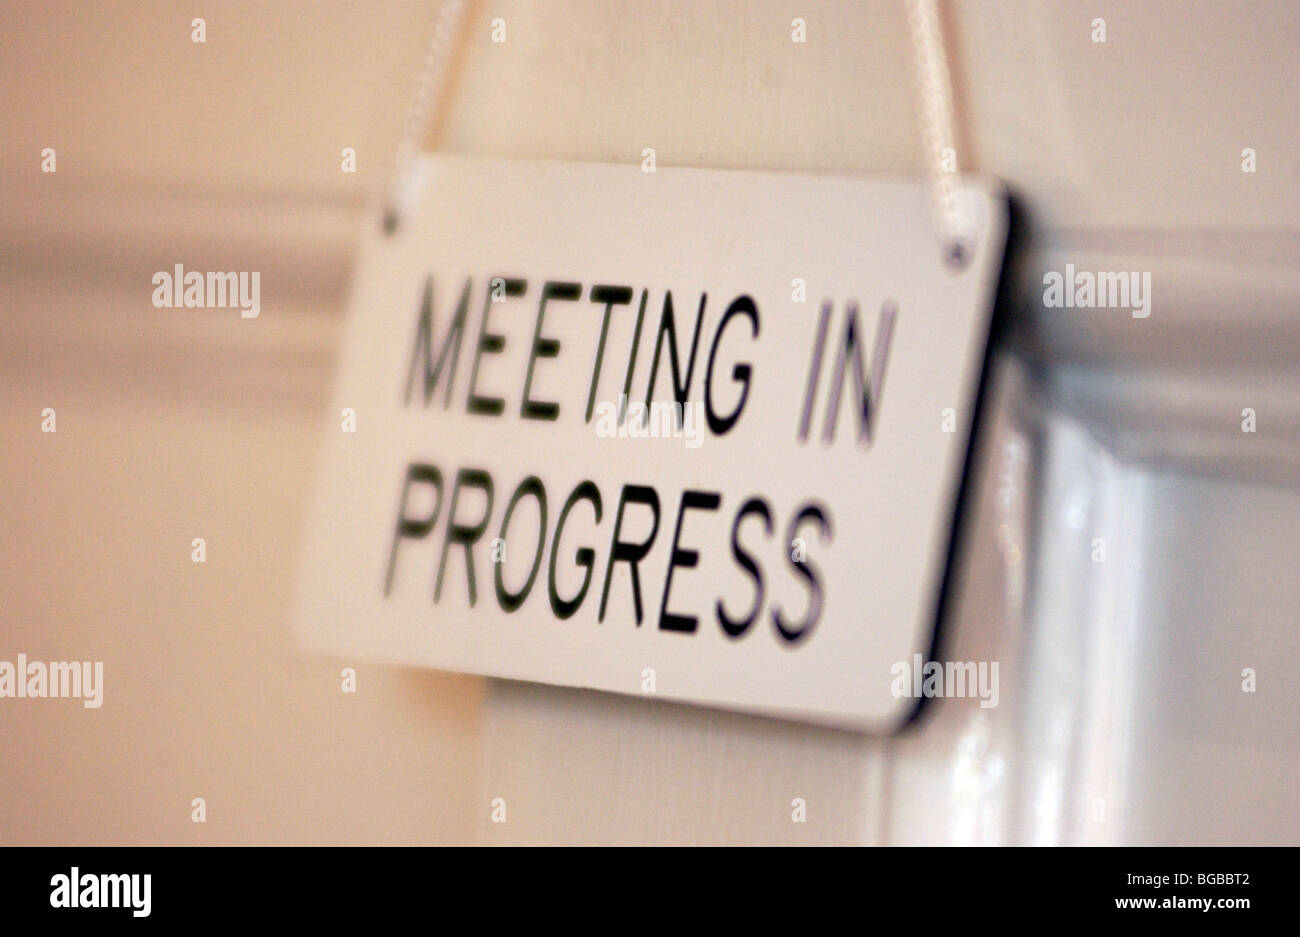 royalty free photograph of meeting in progress sign hanging on door